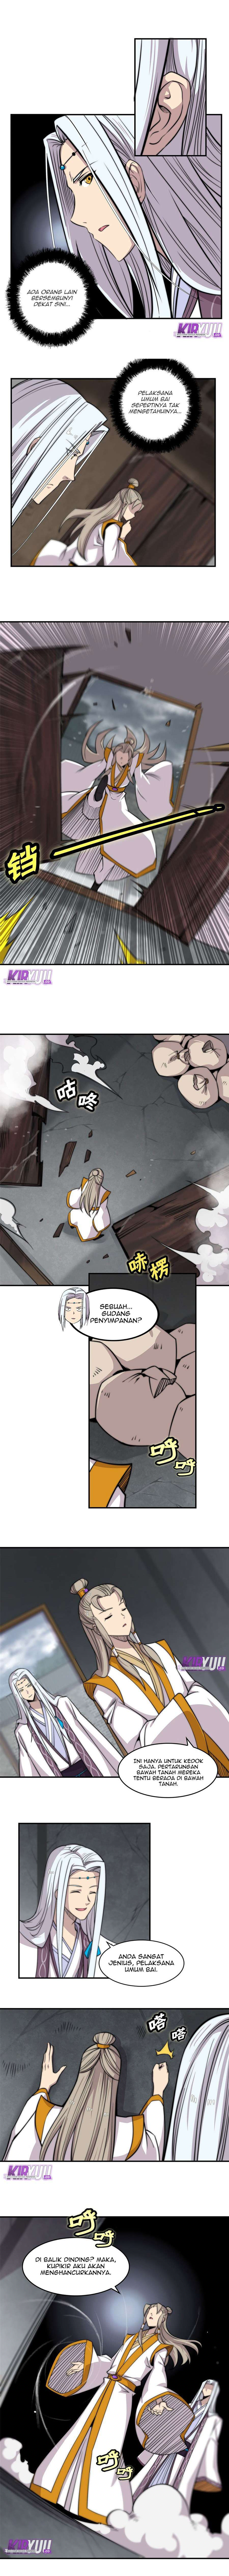 Martial King's Retired Life Chapter 96